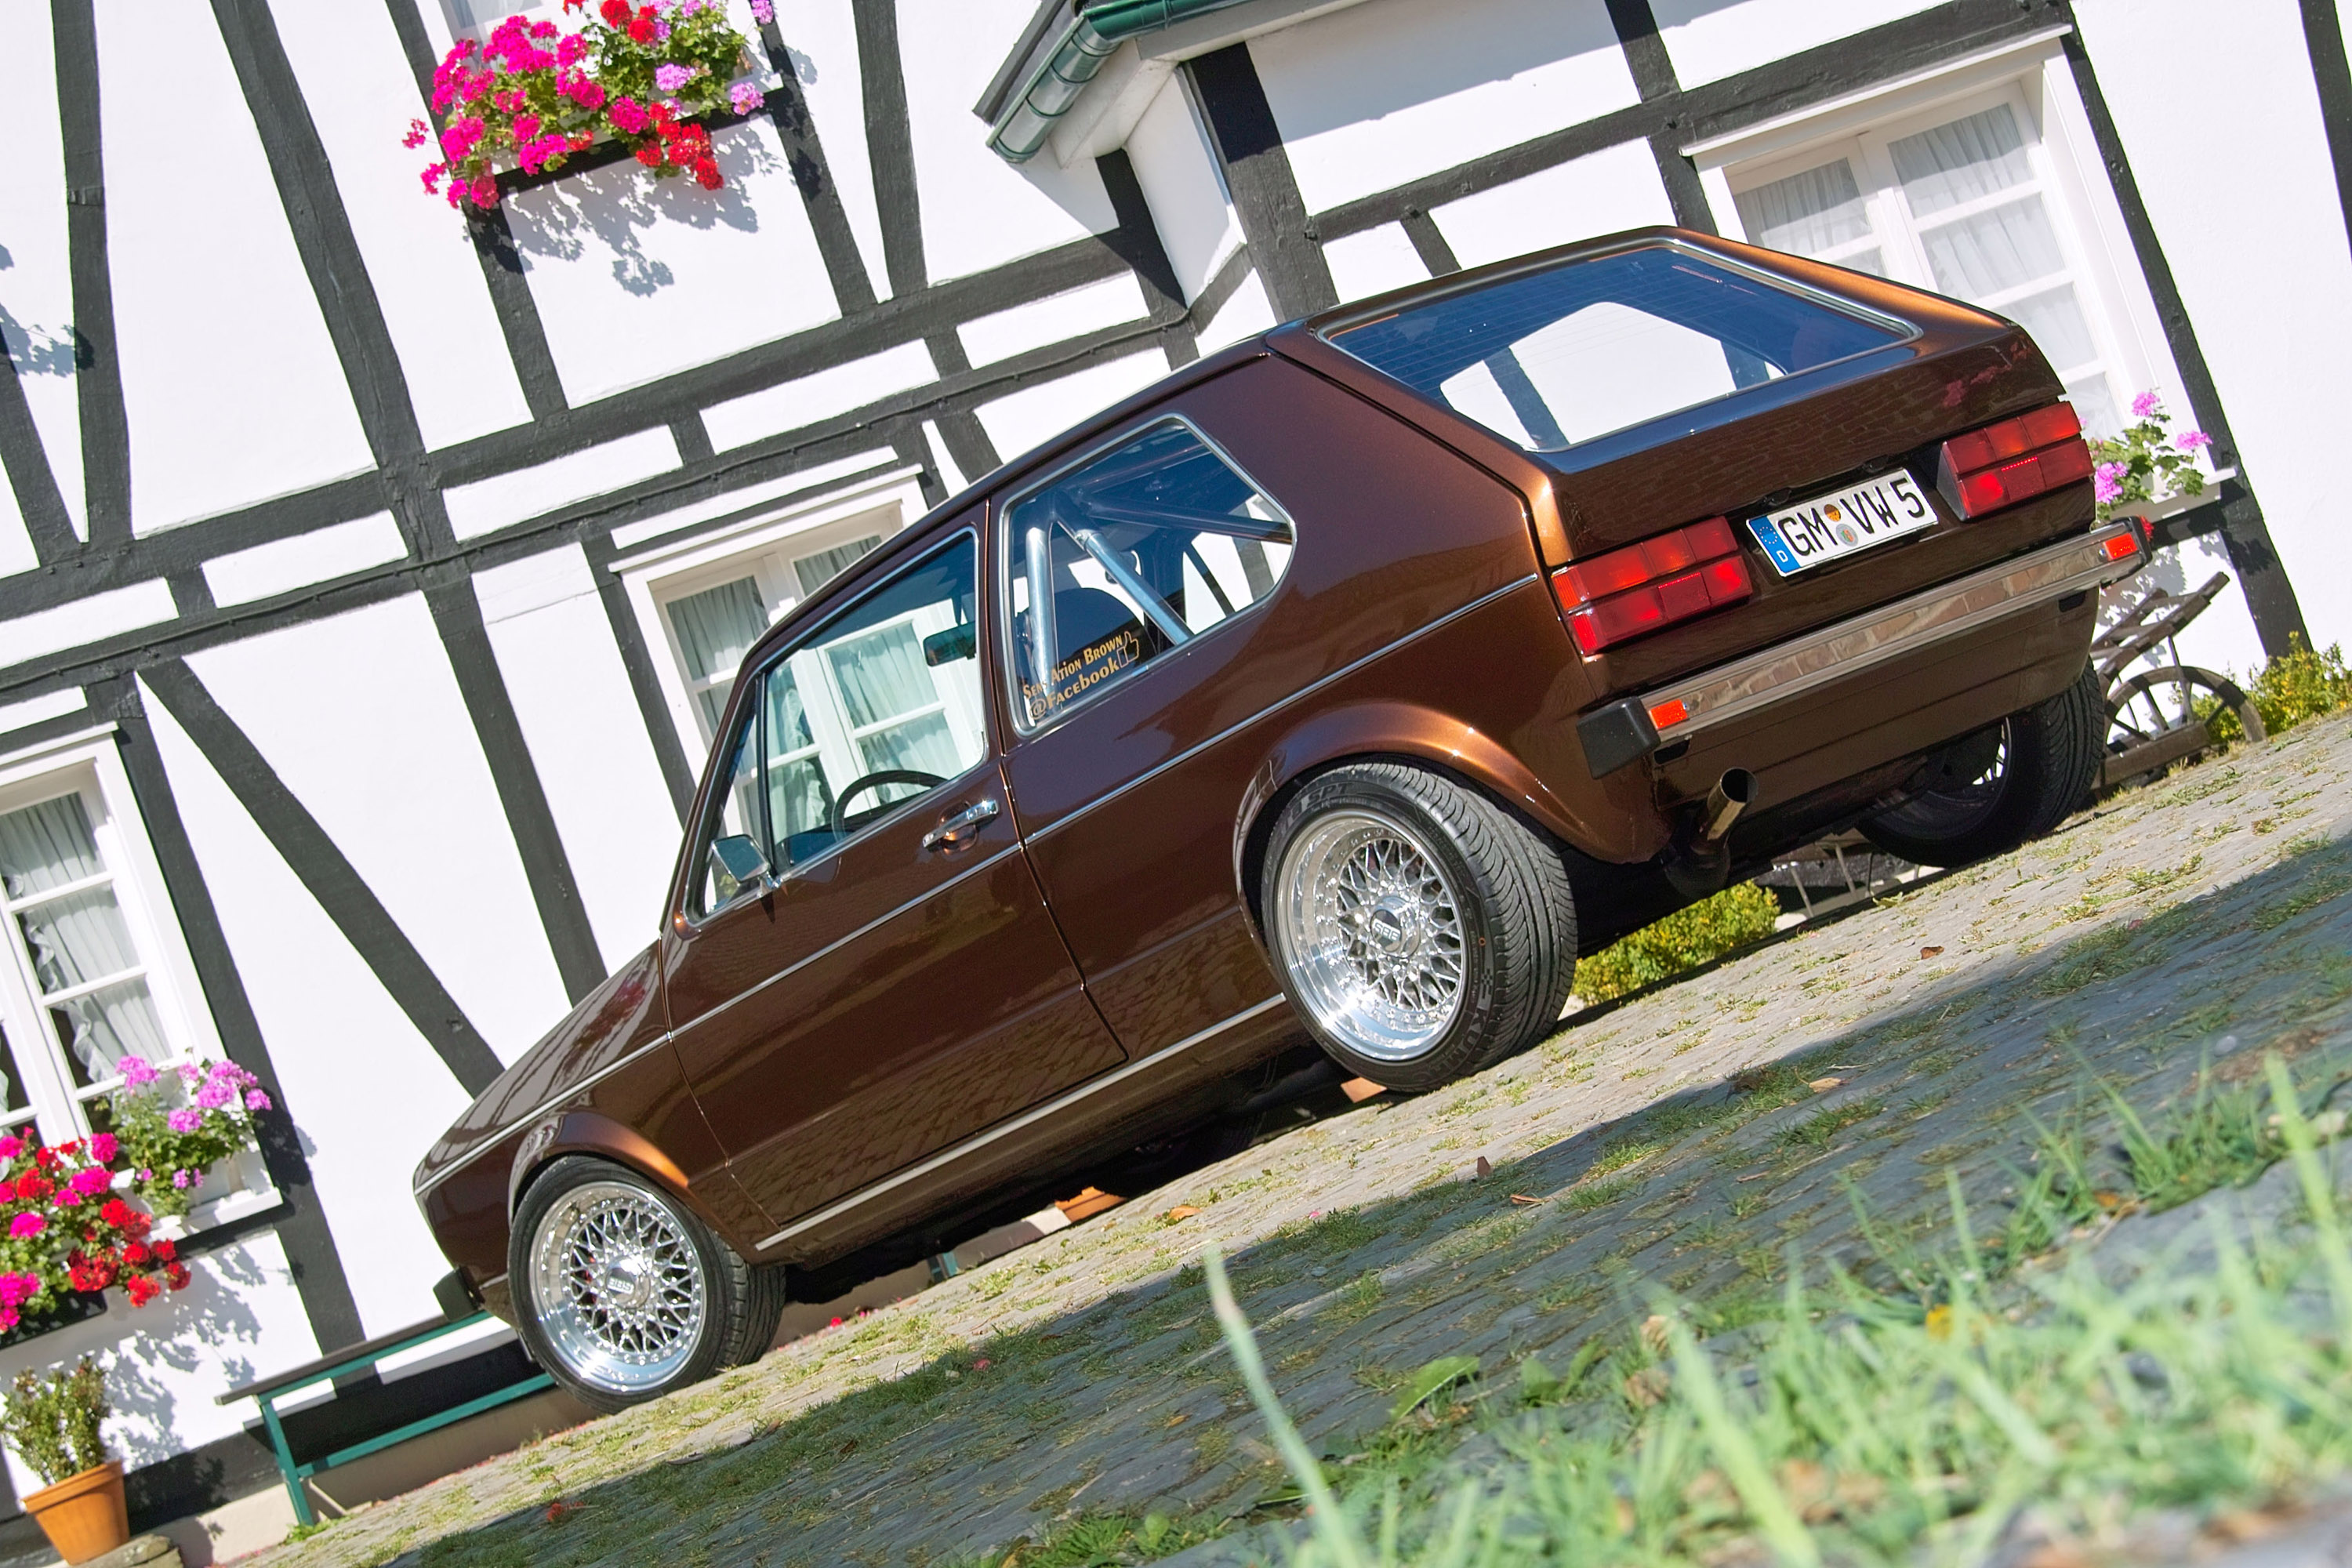 1983 Volkswagen Golf I Chocolate Brown Becomes Car of a Special Kind